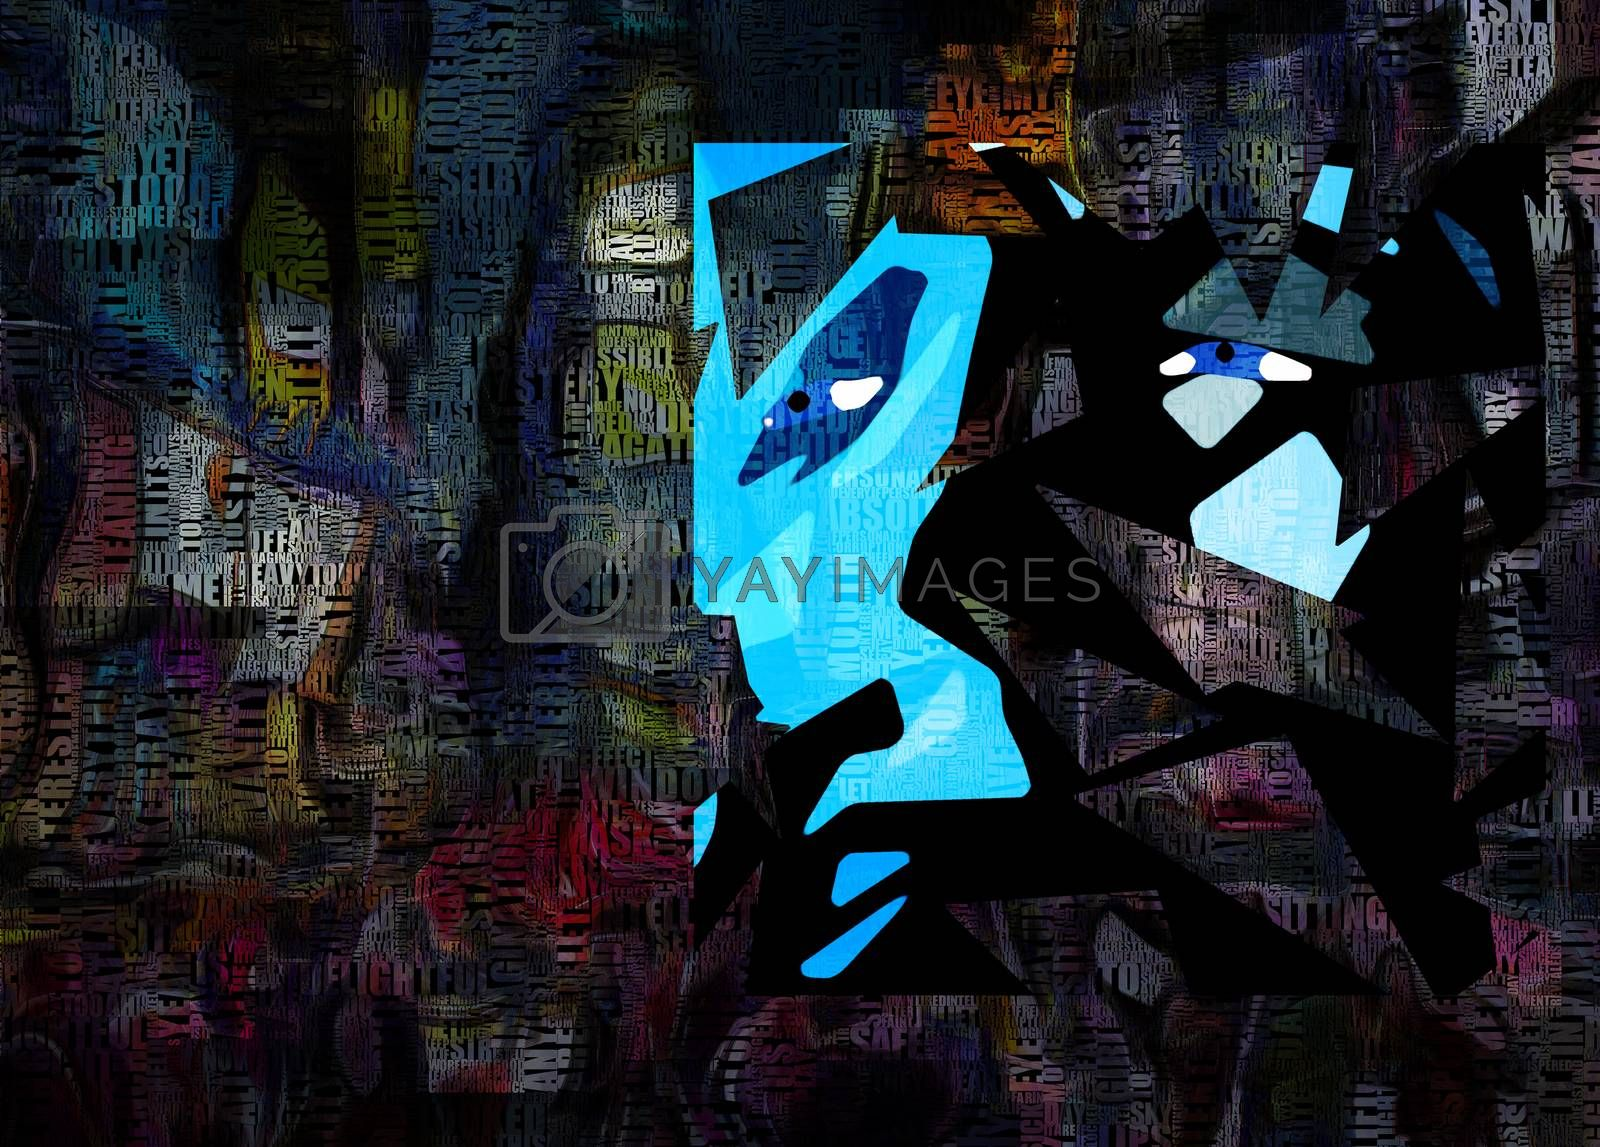 Times Square New York Painting. Picasso style. Words. 3D rendering